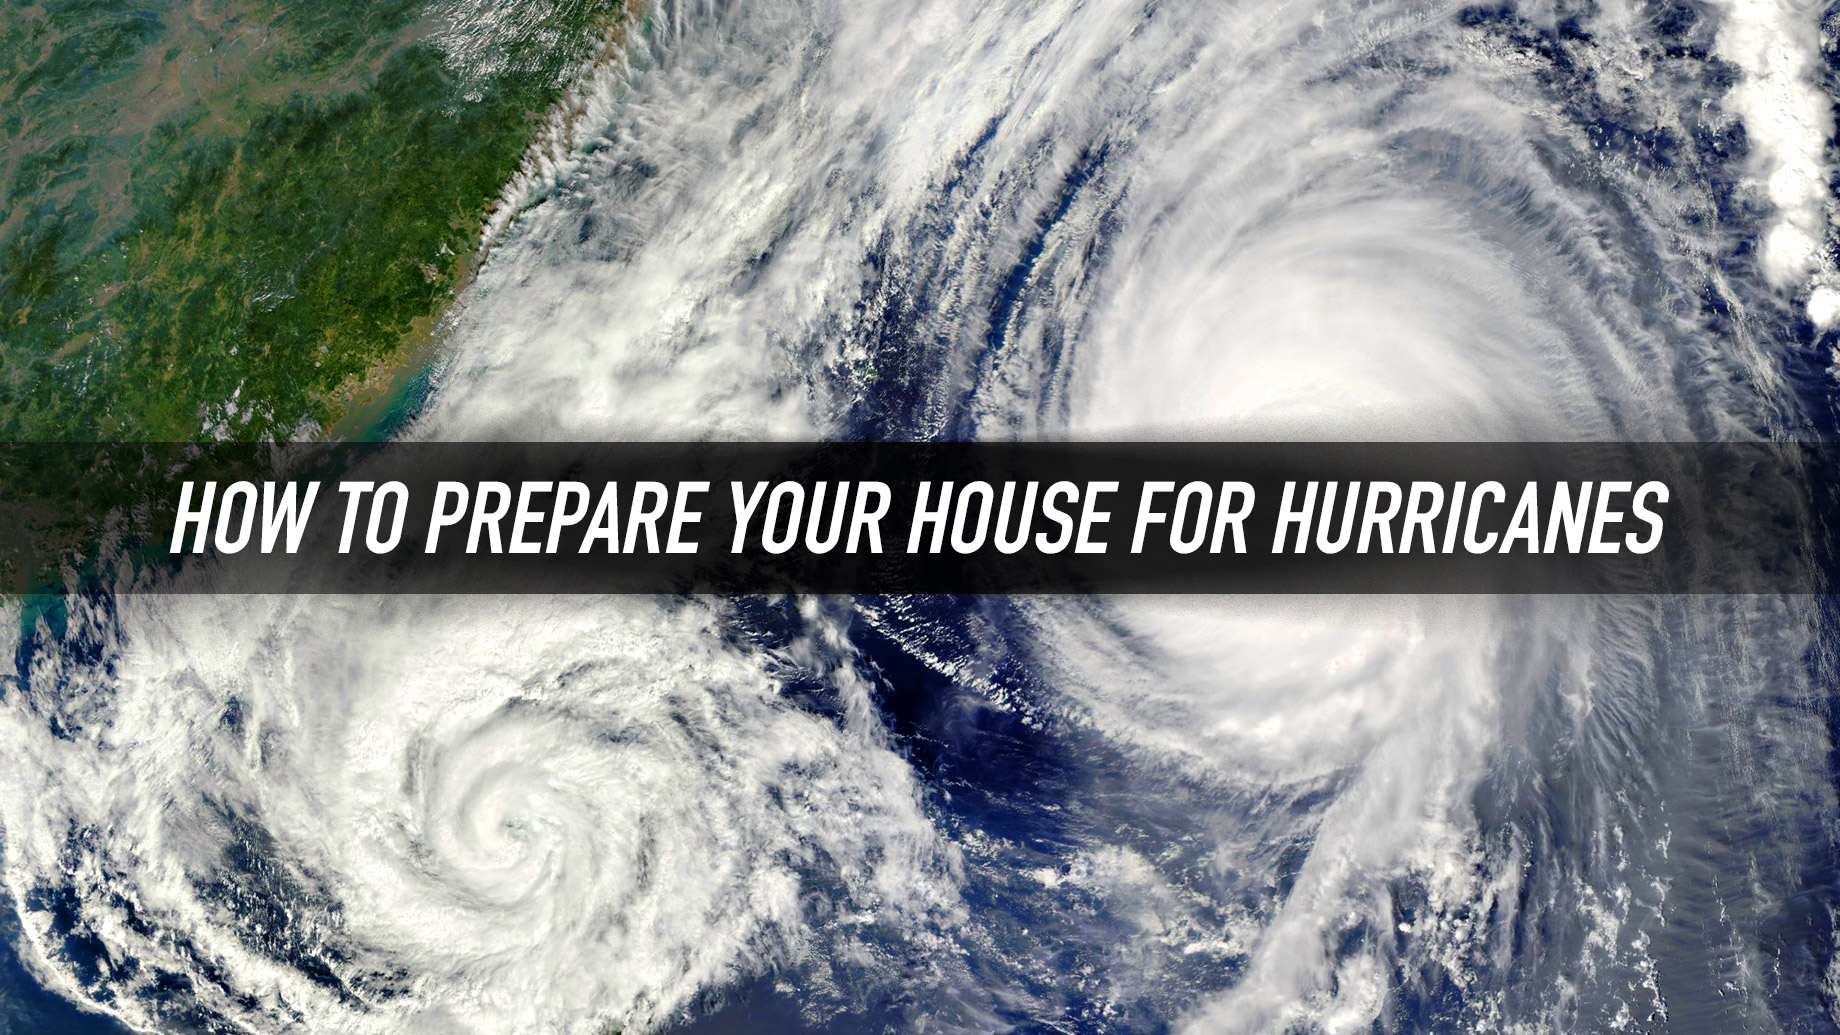 How to Prepare Your House for Hurricanes